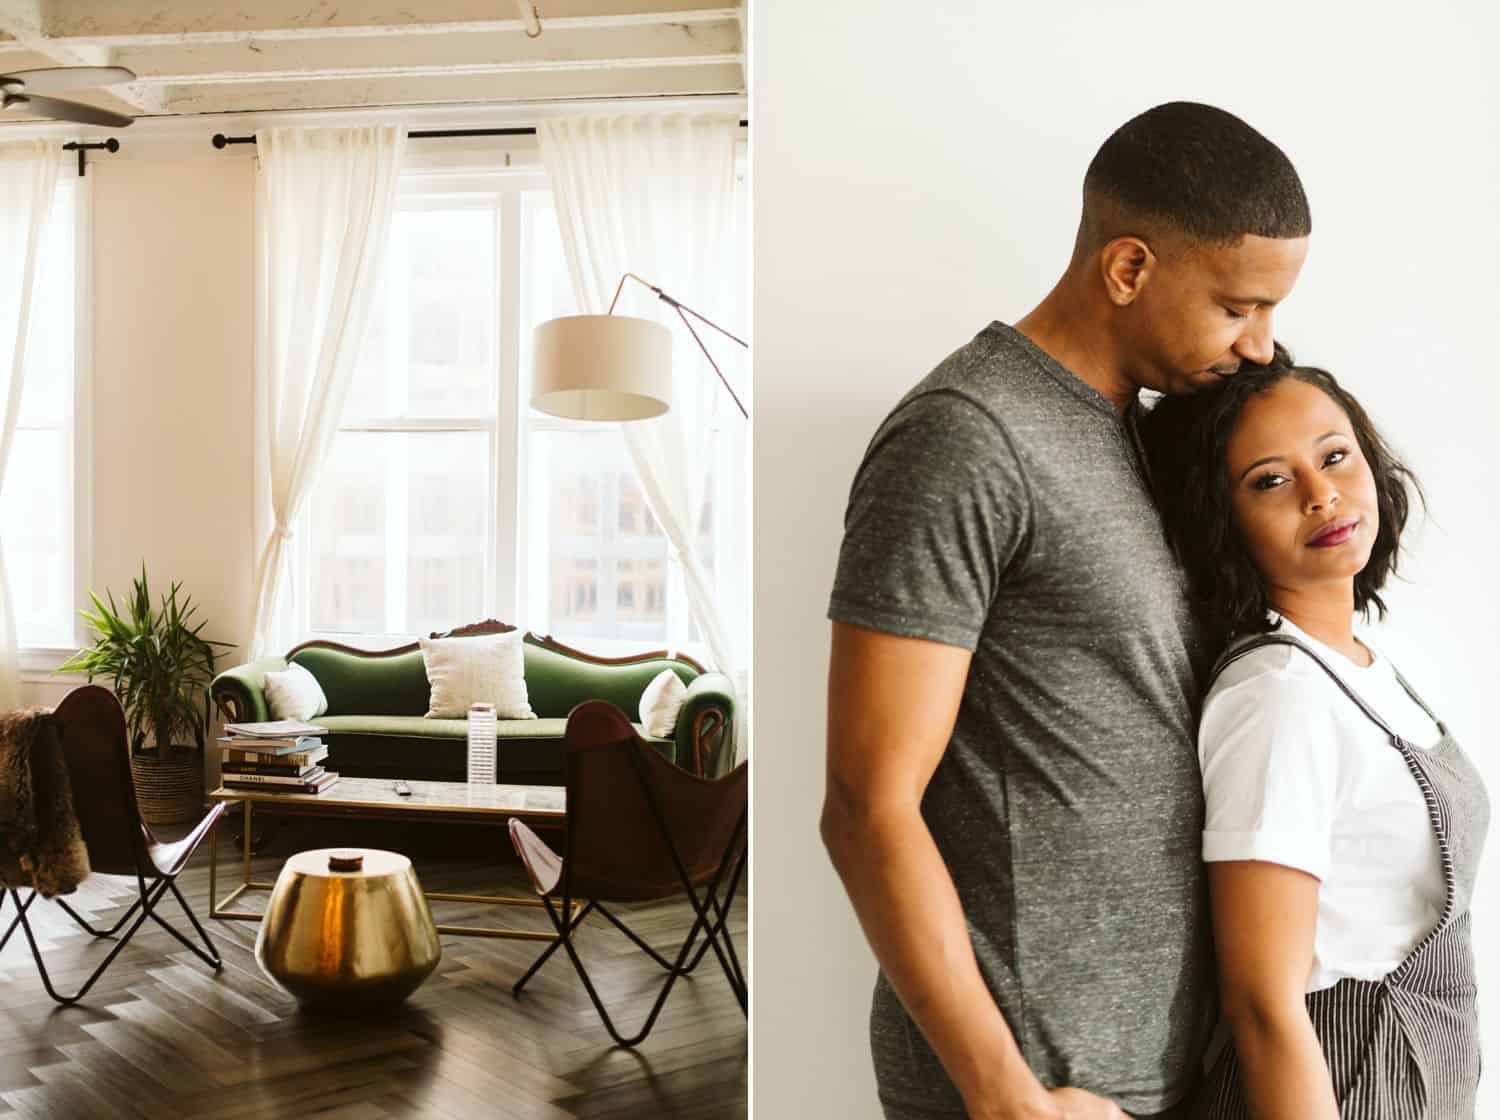 An Atlanta Airbnb and the Black couple who stayed there